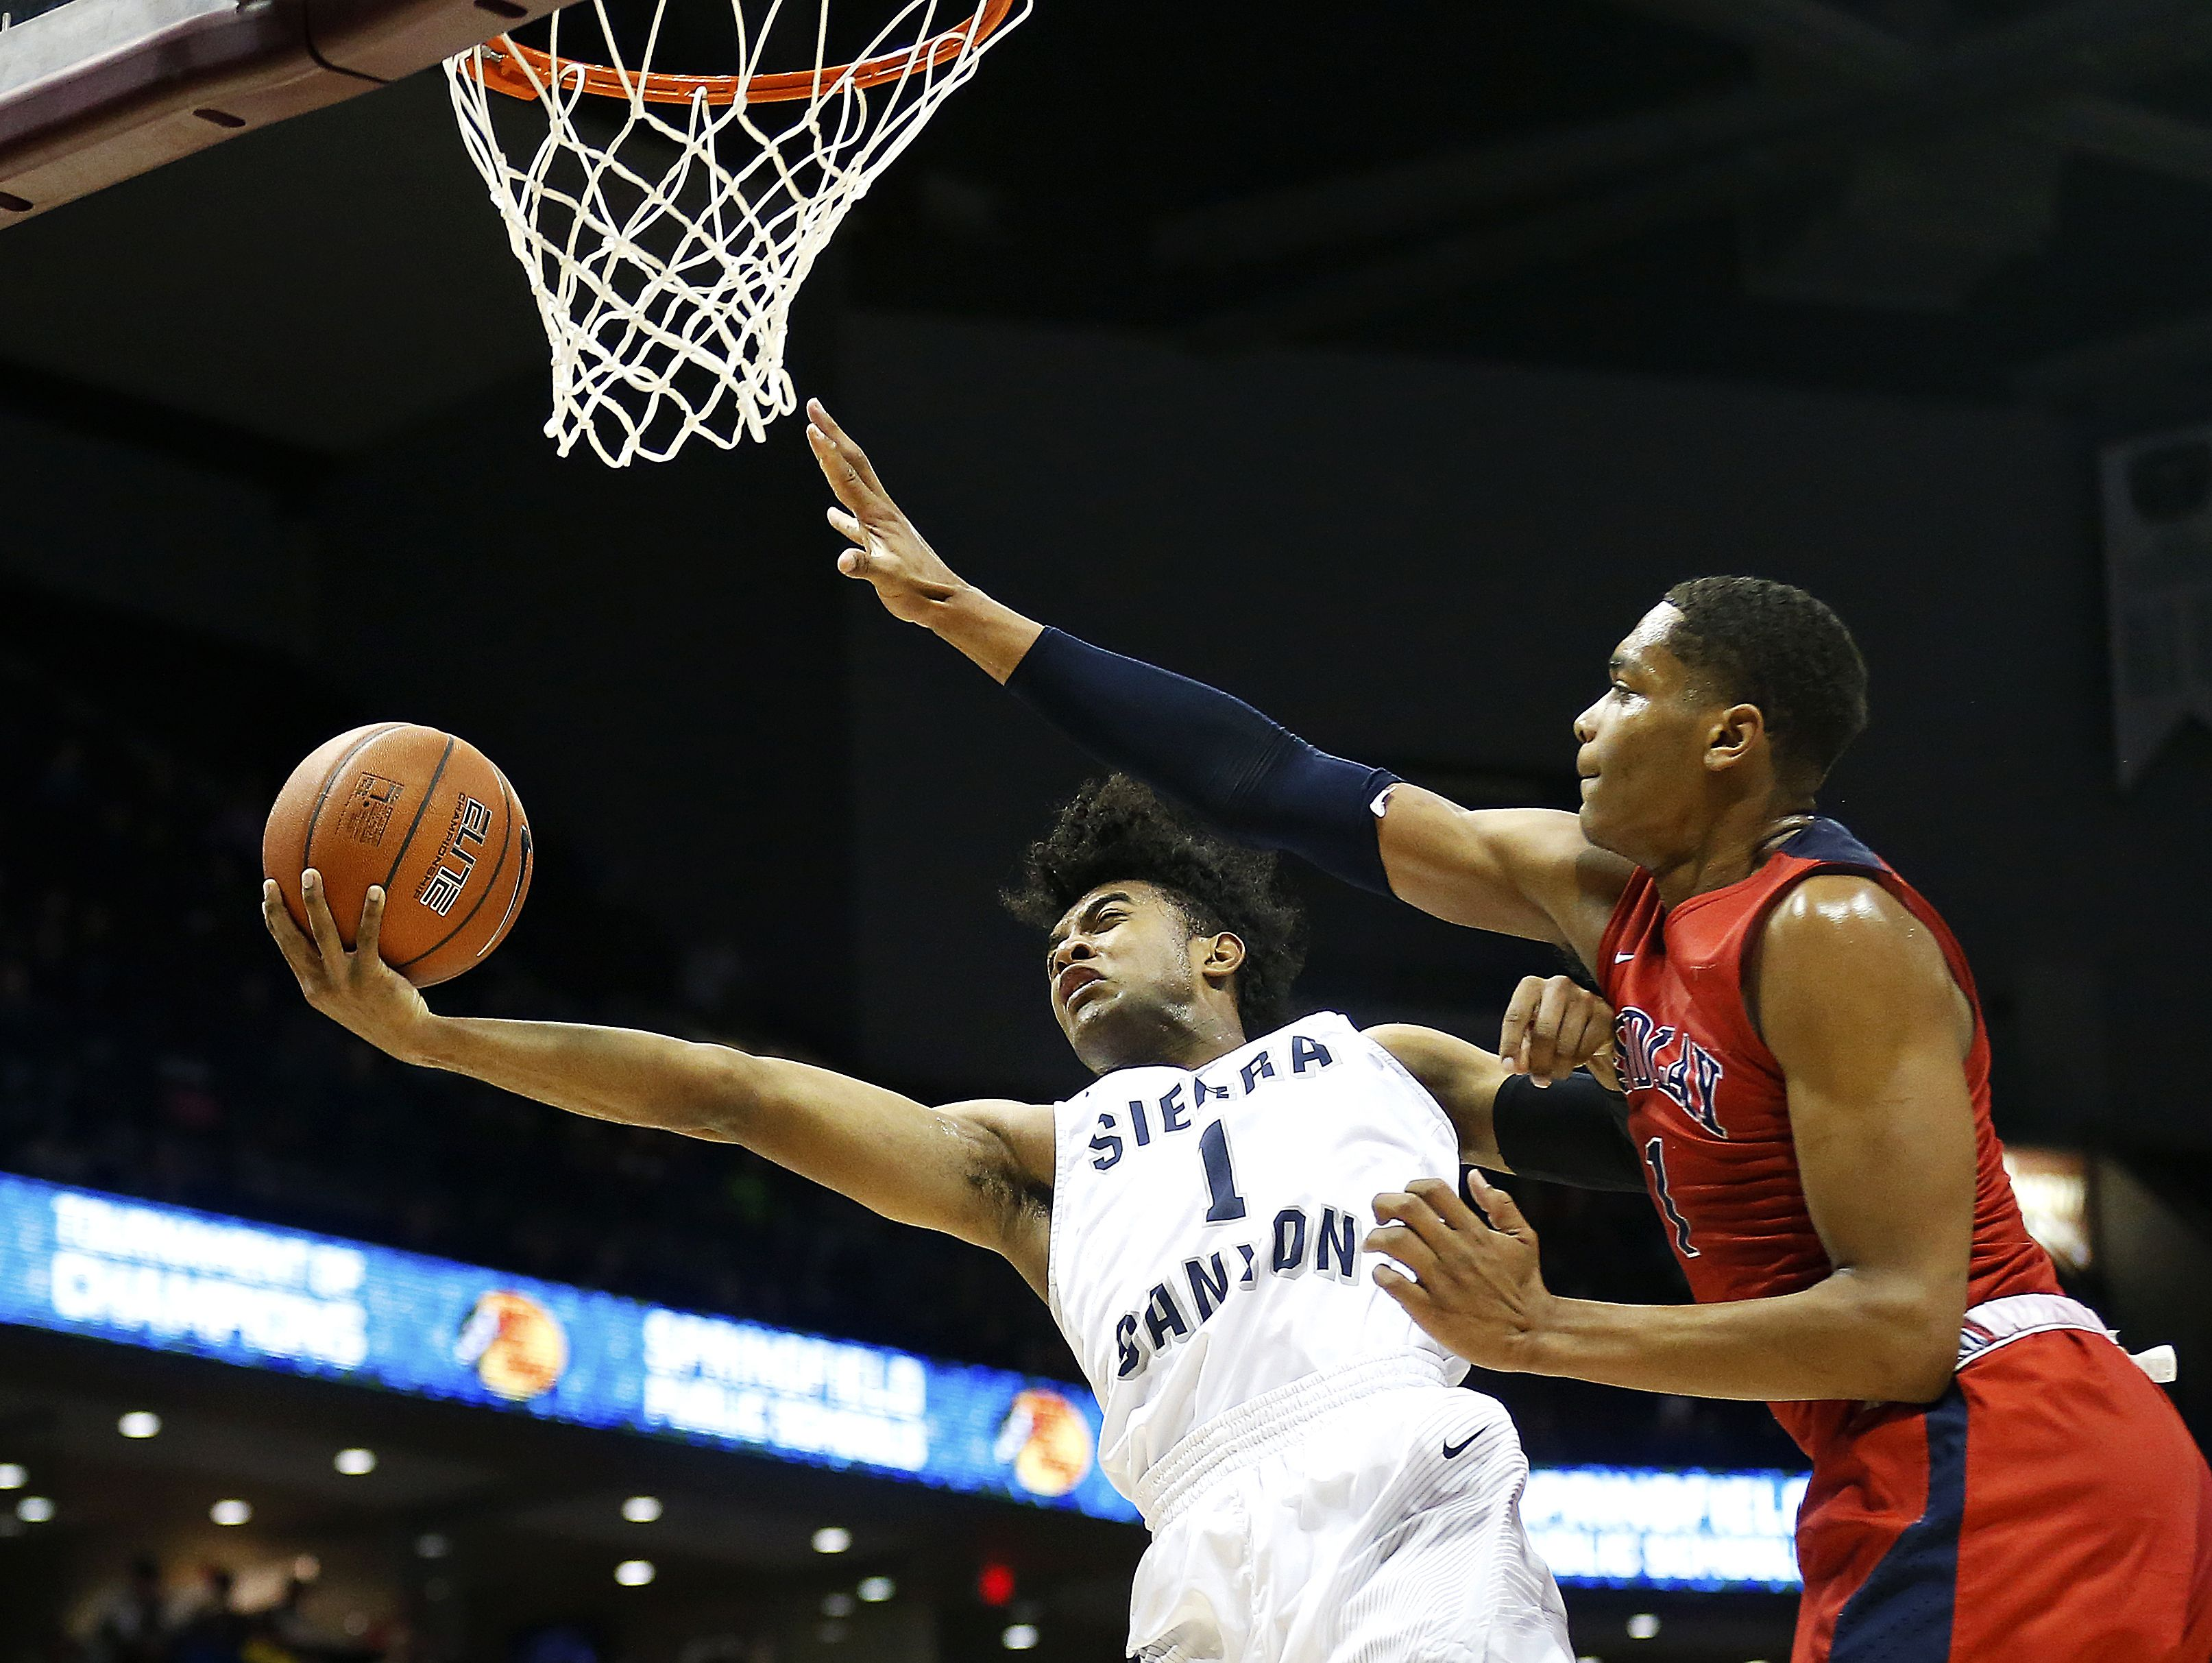 Sierra Canyon School guard Remy Martin (1) tries to shoot past Findlay Prep forward PJ Washington (1) during quarter action of the 2017 Bass Pro Tournament of Champions high school basketball game between the Sierra Canyon School Blazers (Chatsworth, Calif.) and the Findlay Prep Pilots (Las Vegas, Nev.) at JQH Arena in Springfield, Mo. on Jan. 13, 2017.